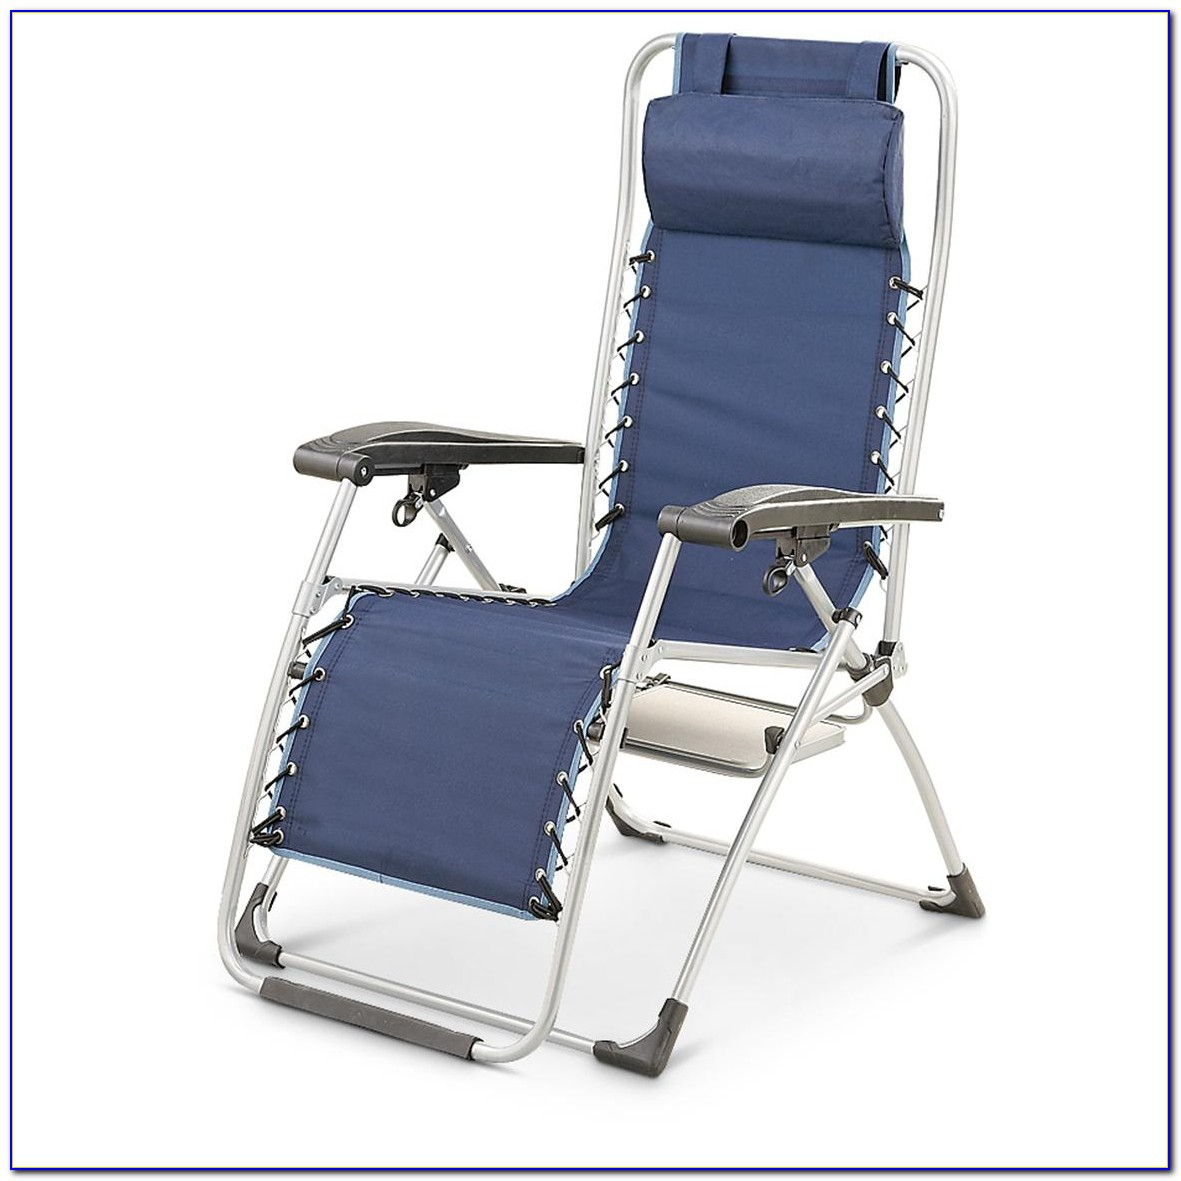 Anti Gravity Chairs With Canopy